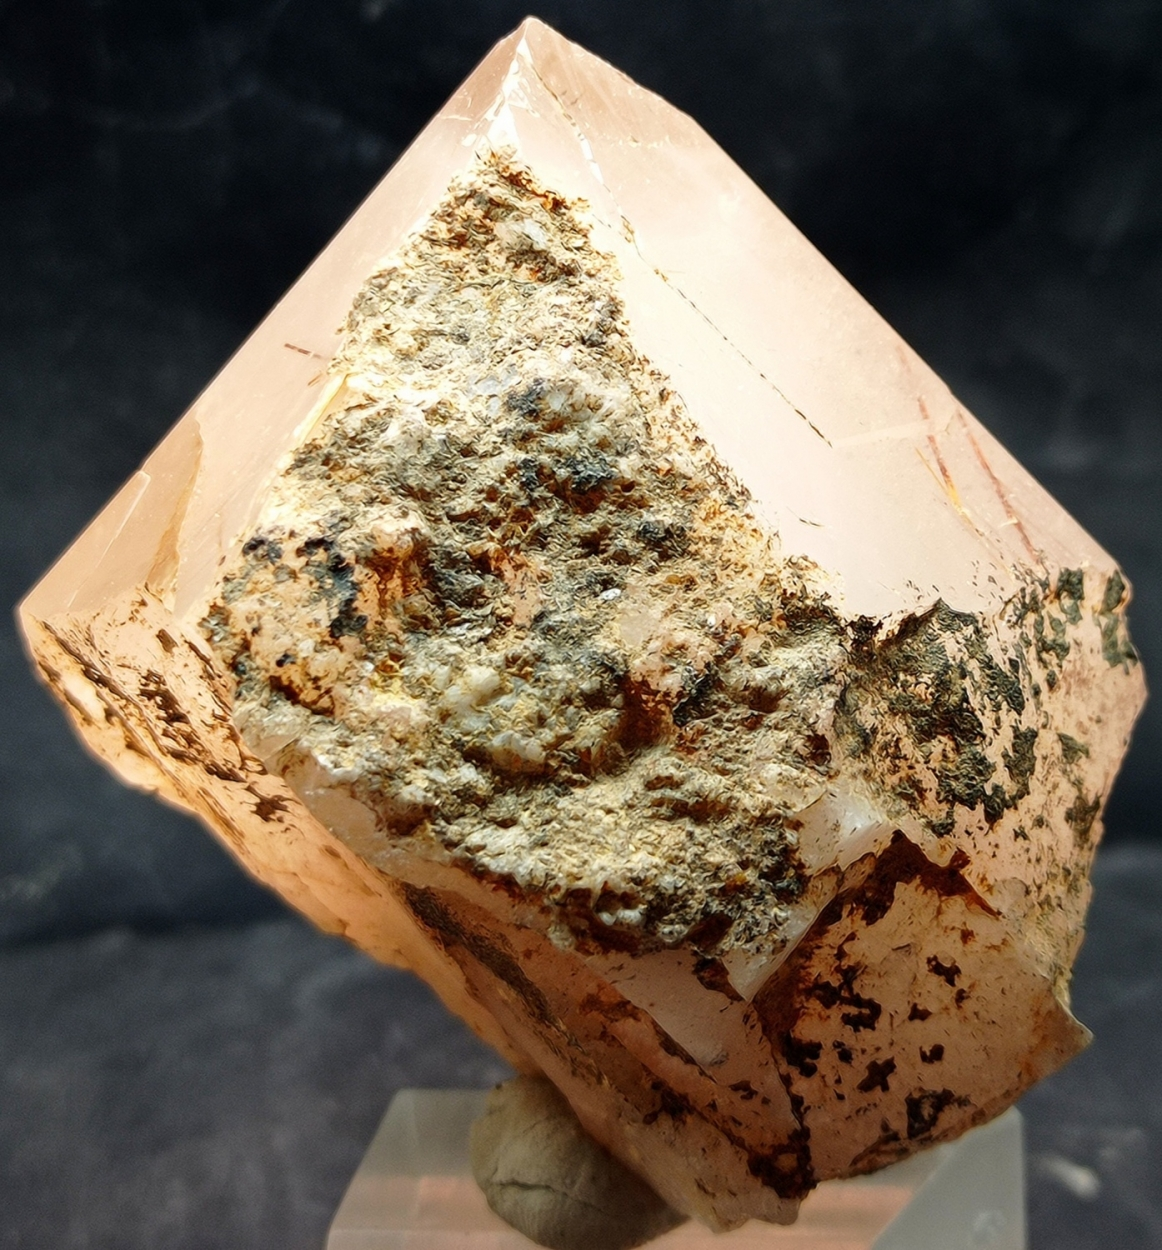 Quartz With Rutile Inclusions